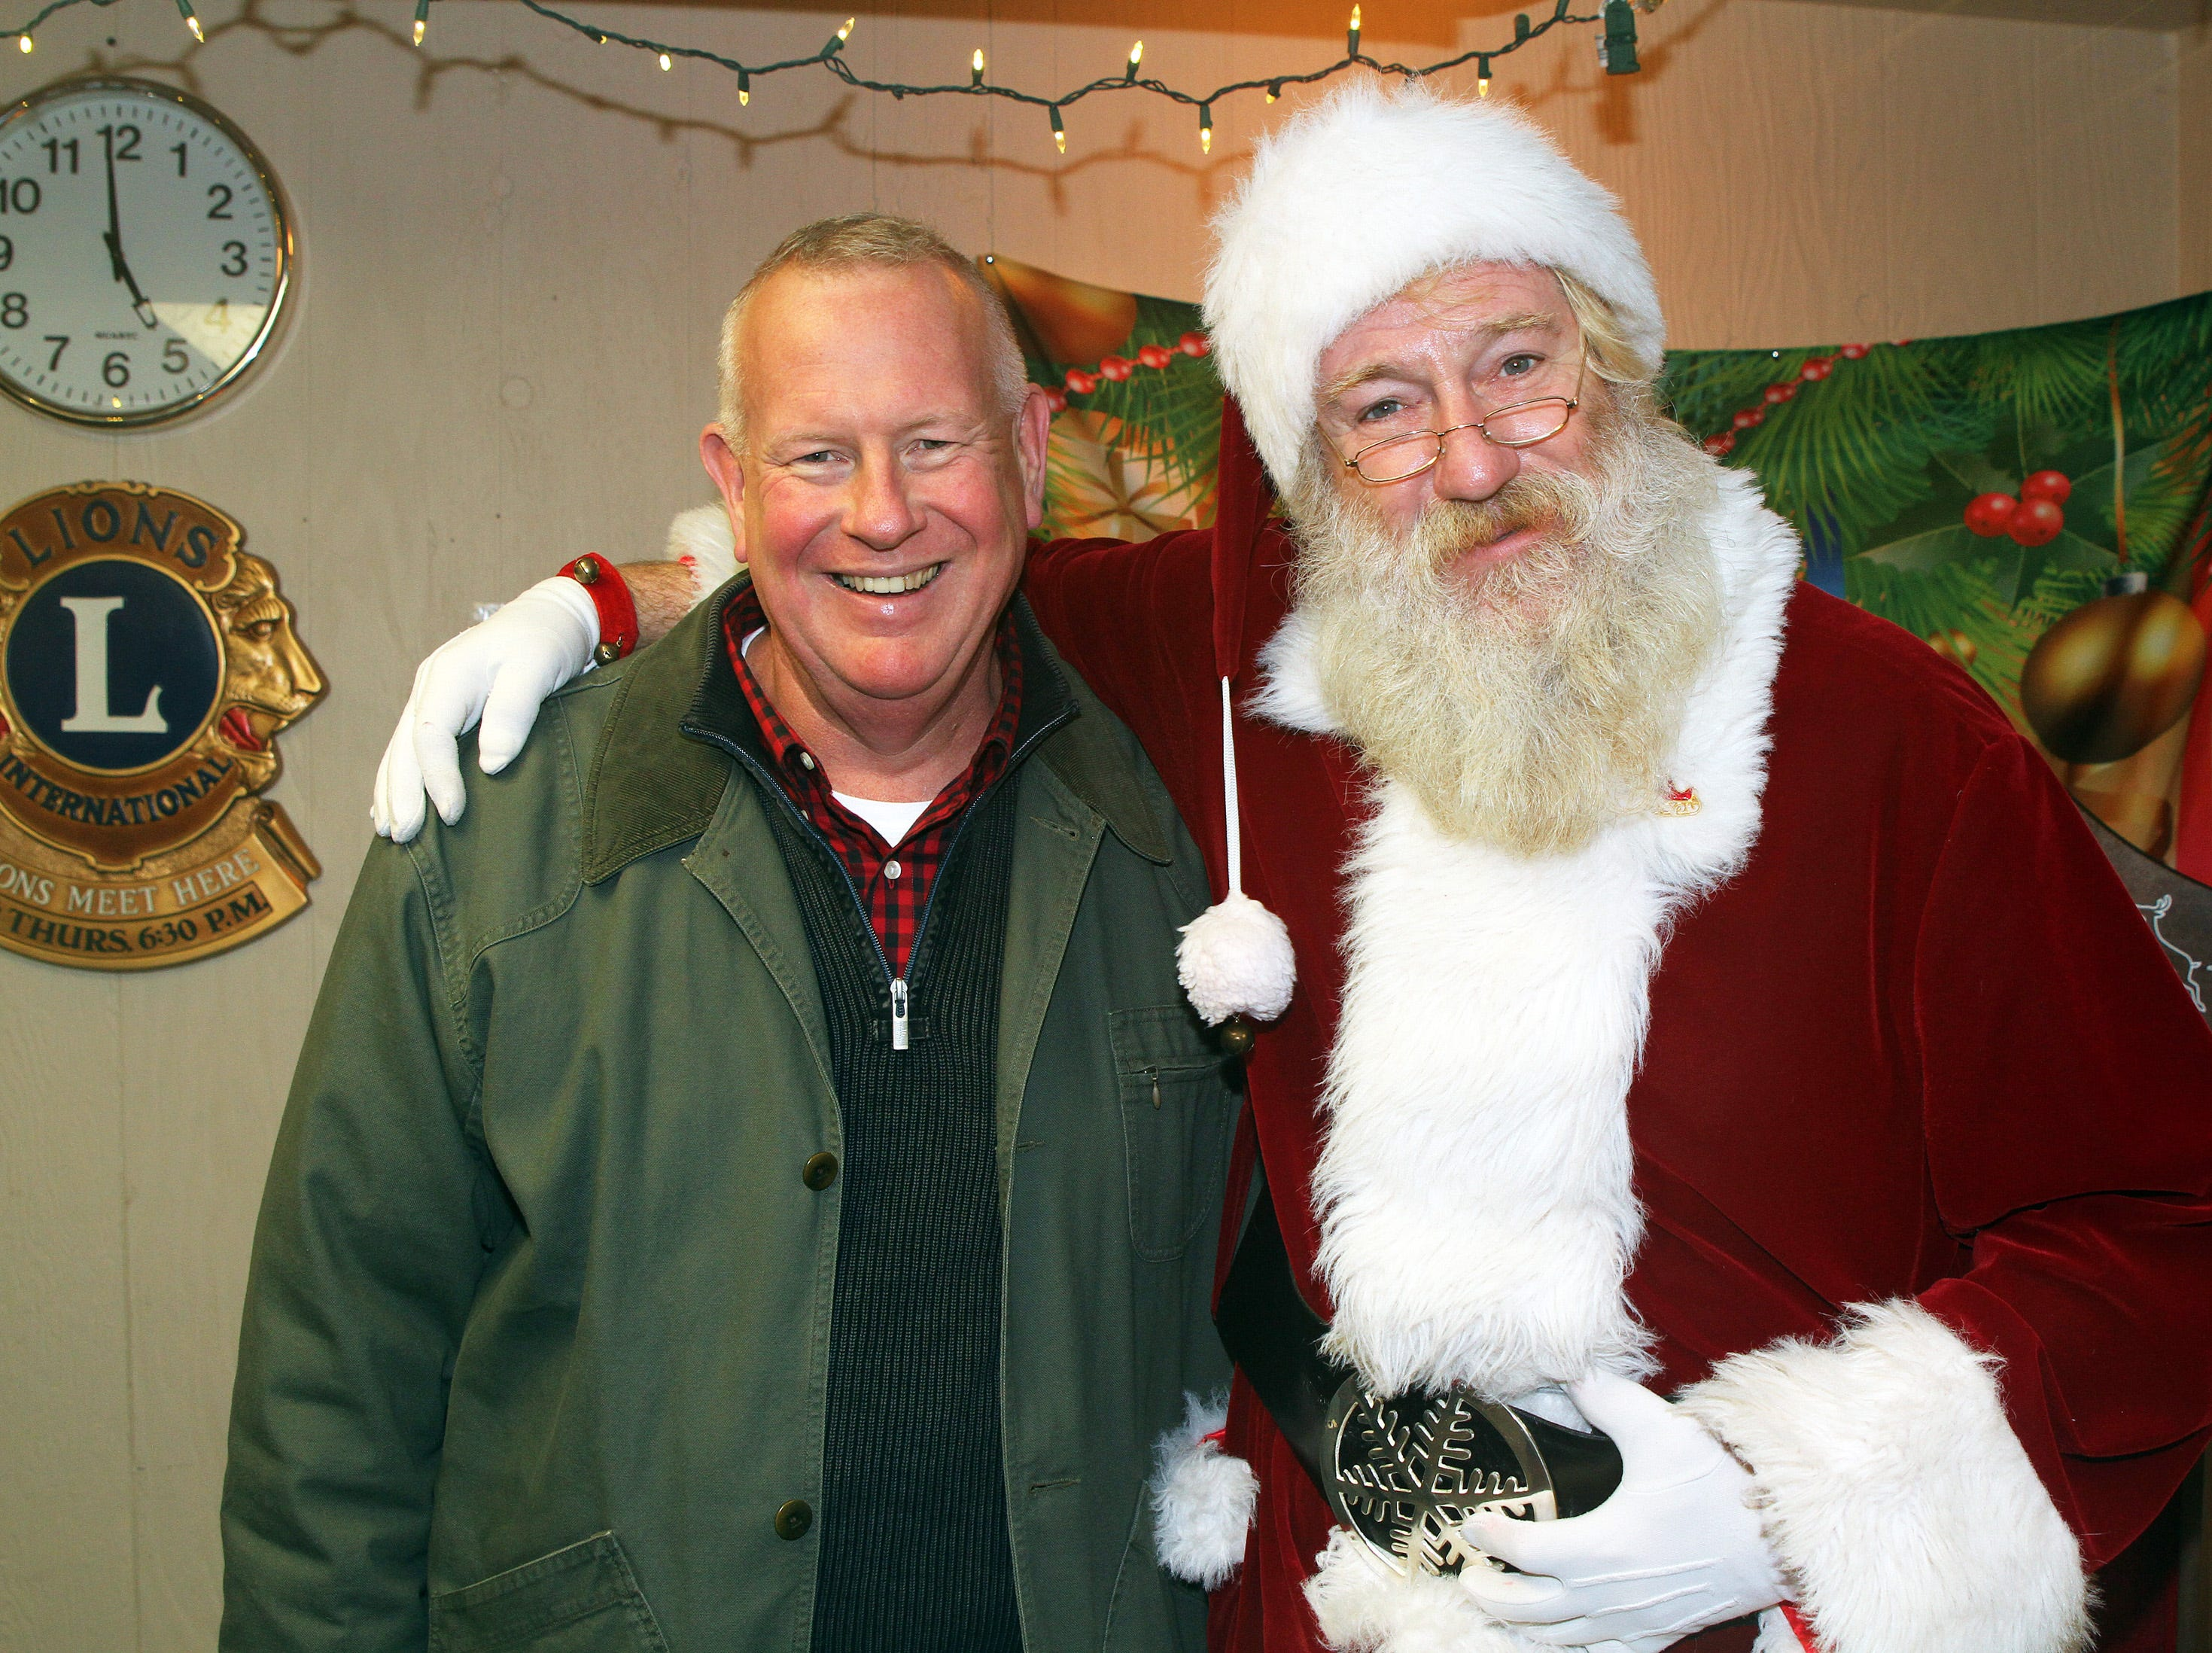 Mayor Bob Andeweg and Santa pose for a picture during UCAN's third annual Light Up Urbandale on Sunday, Dec. 2, 2018 at Lions Park in Urbandale. Holiday festivities included a visit from Santa, crafts, goodies, official tree lighting ceremony, live reindeer and entertainment.